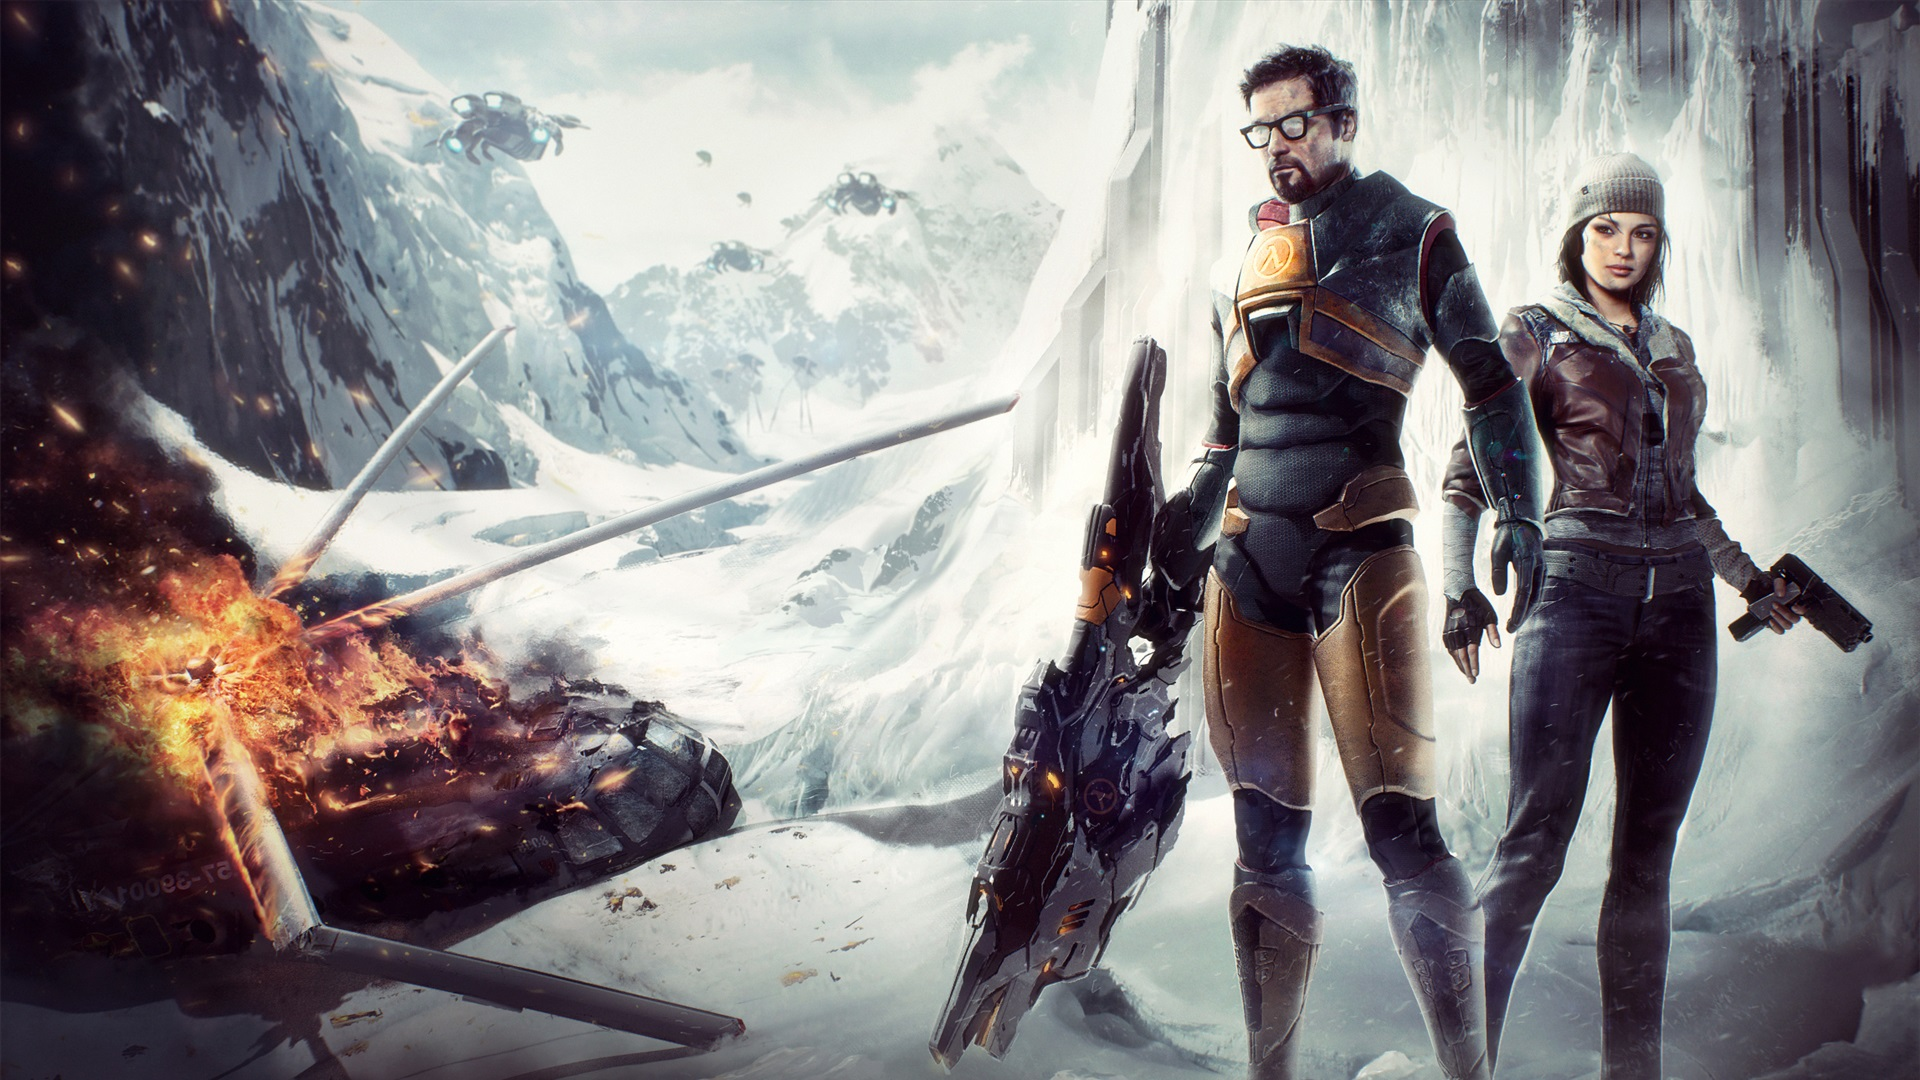 Wallpaper Half Life 2 Pc Games 1920x1440 Hd Picture Image